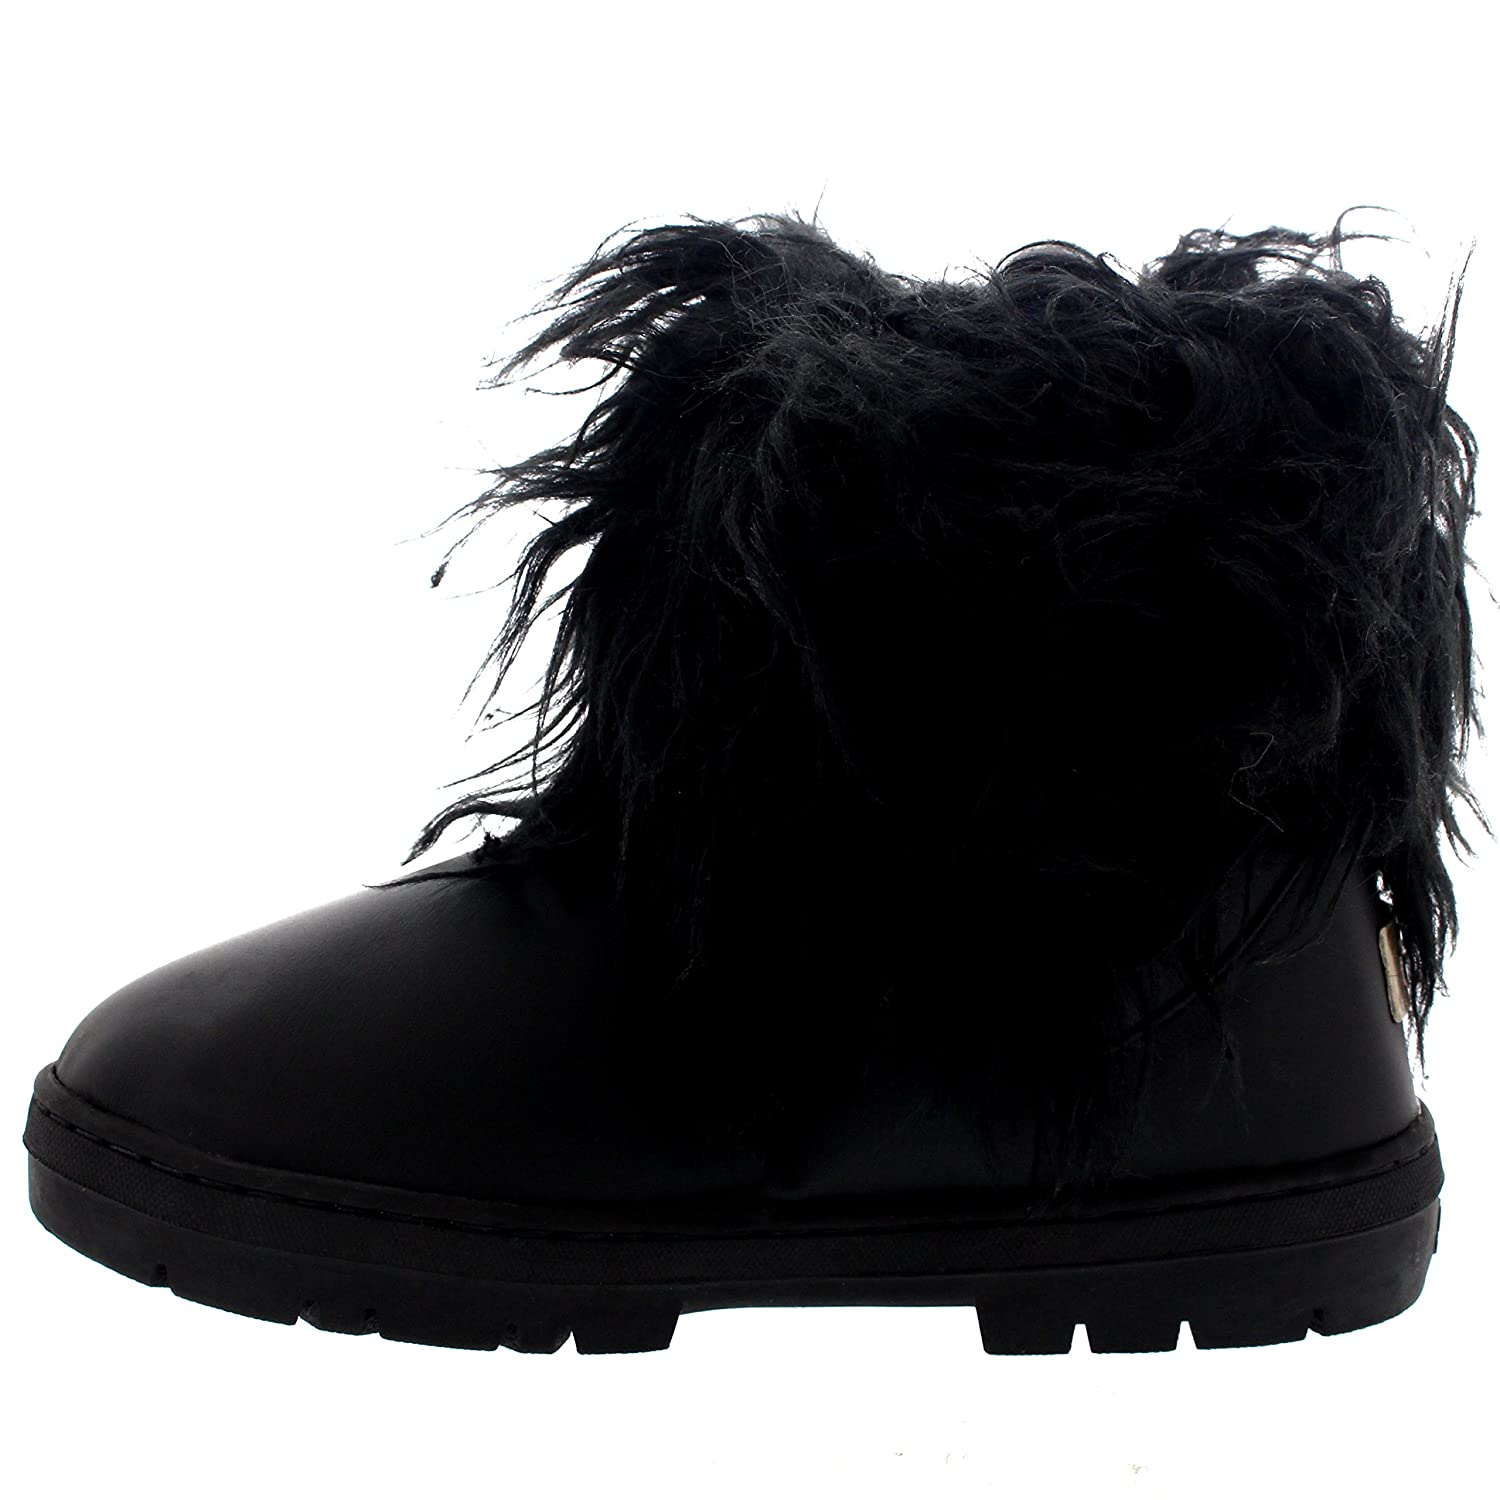 Womens Short Eskimo Winter Waterproof Hard Sole Mid B(M) Calf Boots B01FKMHHBC 7 B(M) Mid US|Black Leather a8fc85